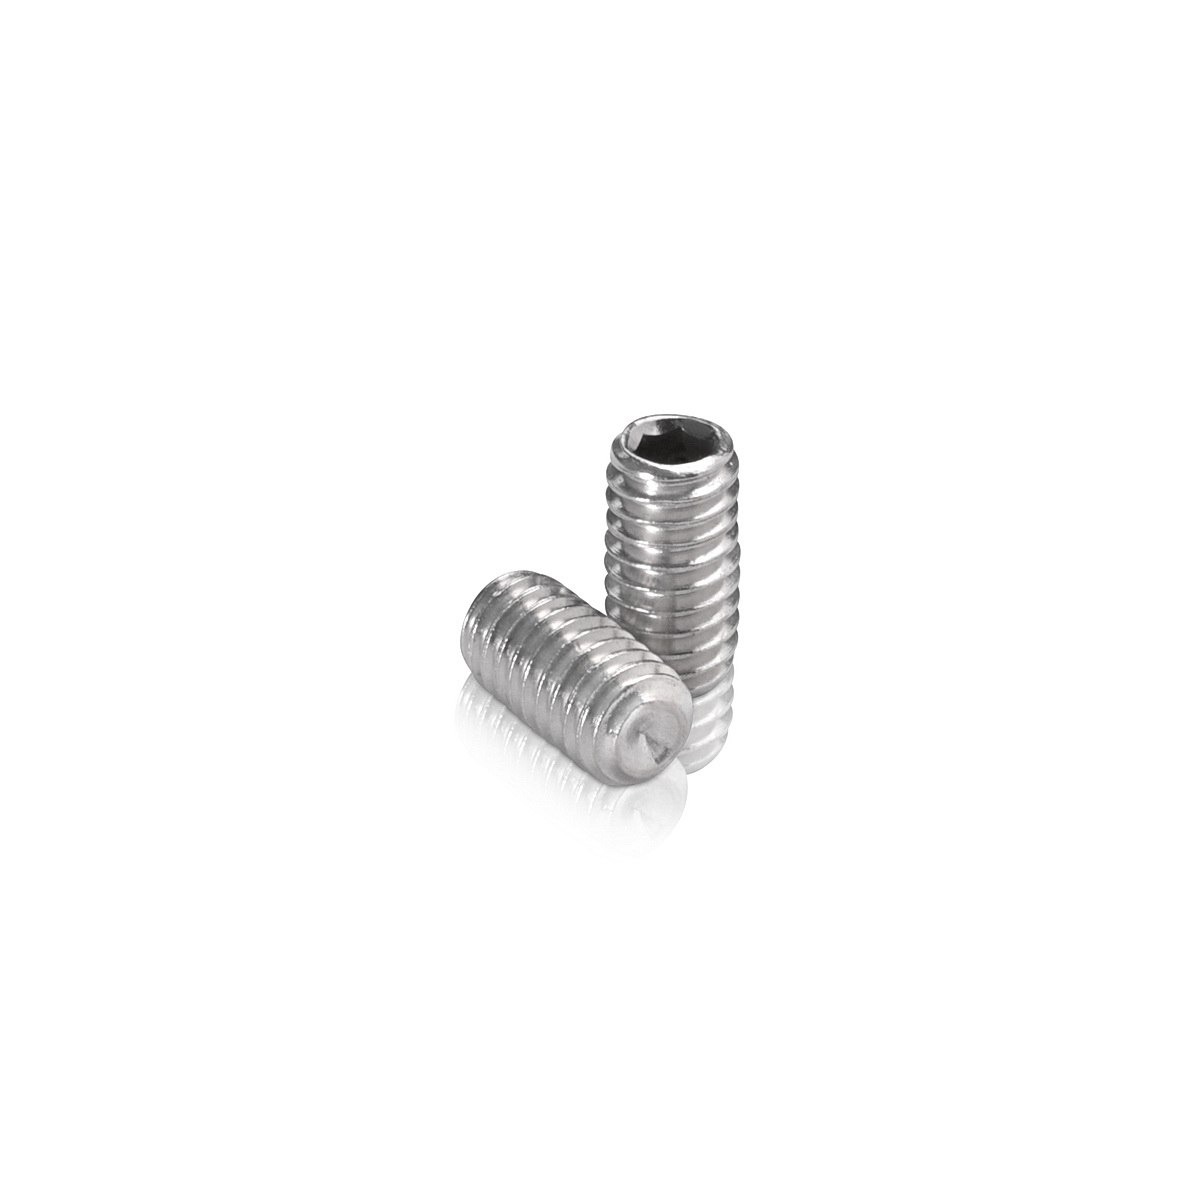 Stainless Steel Stud 5/16-18 Threaded, Length: 5/8''